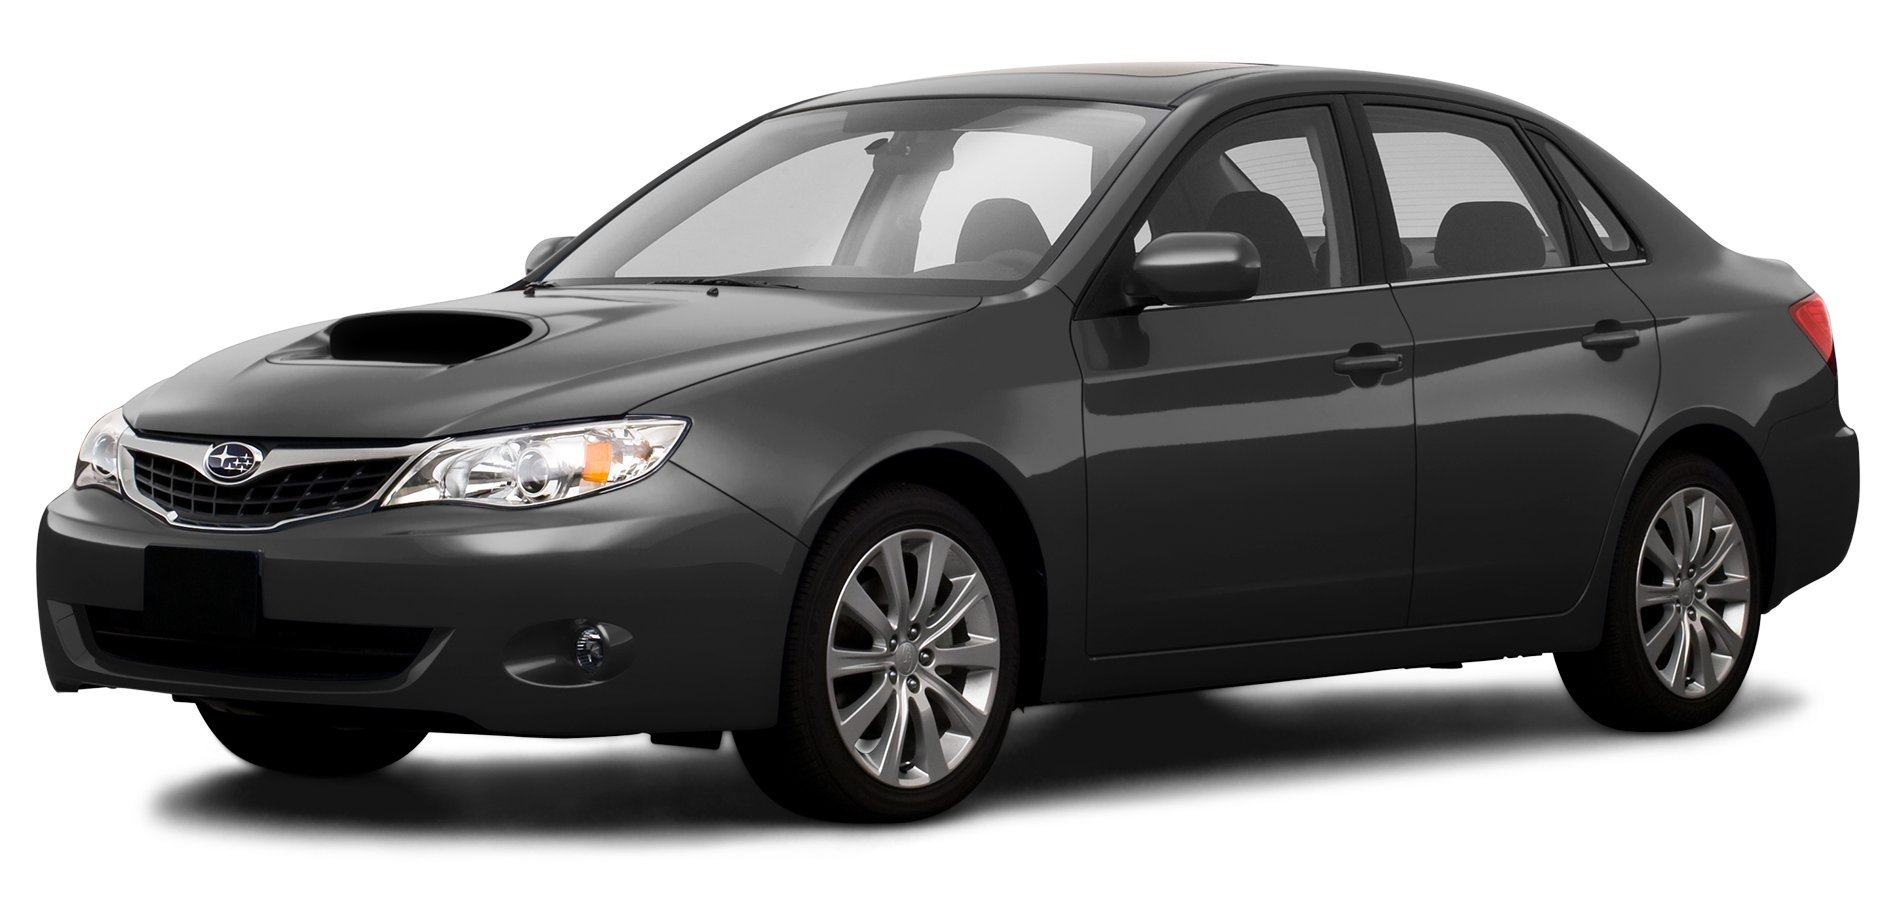 2009 Subaru Impreza GT, 4-Door Automatic Transmission ...